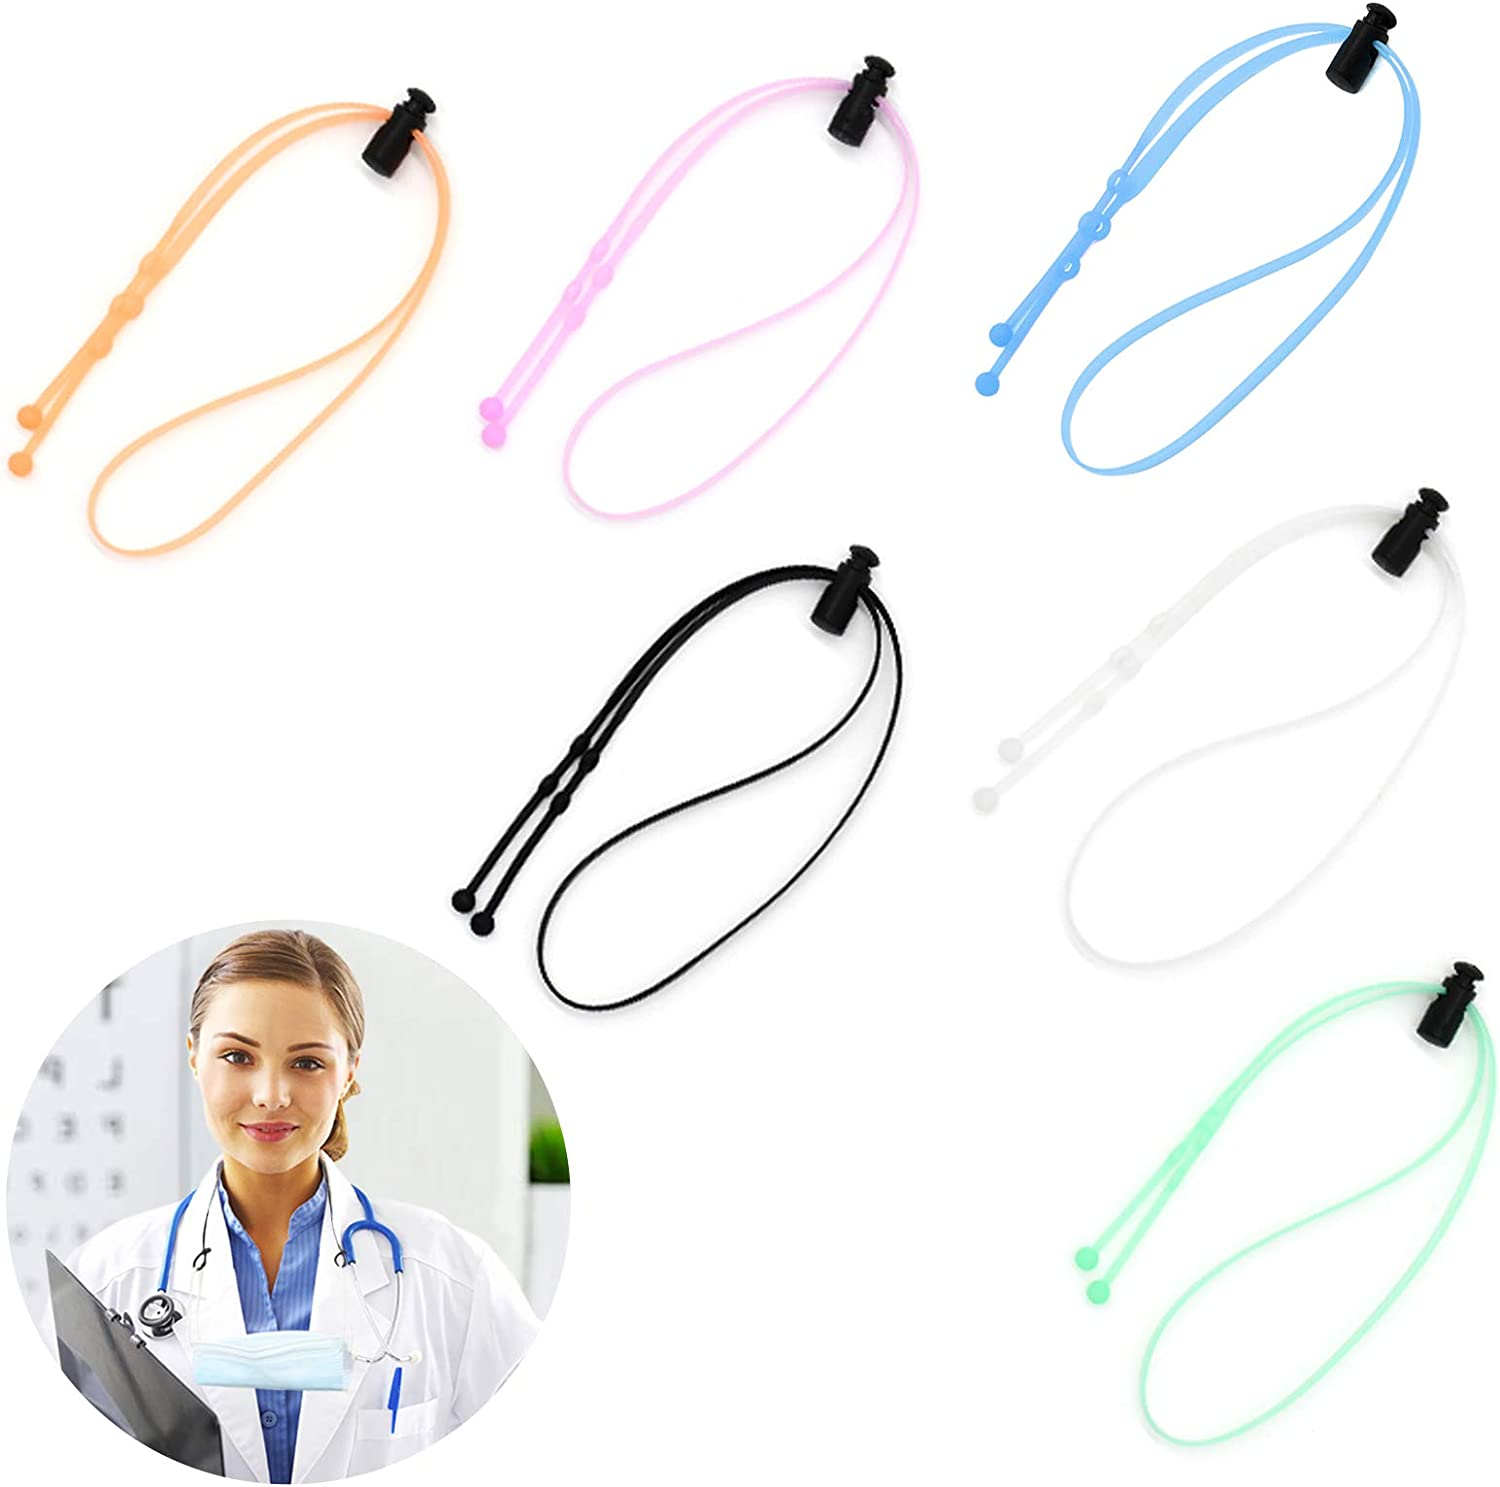 XMY Silicone Mask Strap Extender, Face Mask Lanyard Strap, Stepless Adjustable Mask Strap, Resistant up to 400 ℃ Odorless Food-Grade Premium Integrated Anti-Slip Silicone Lanyard Ver3.0(6 PCS)